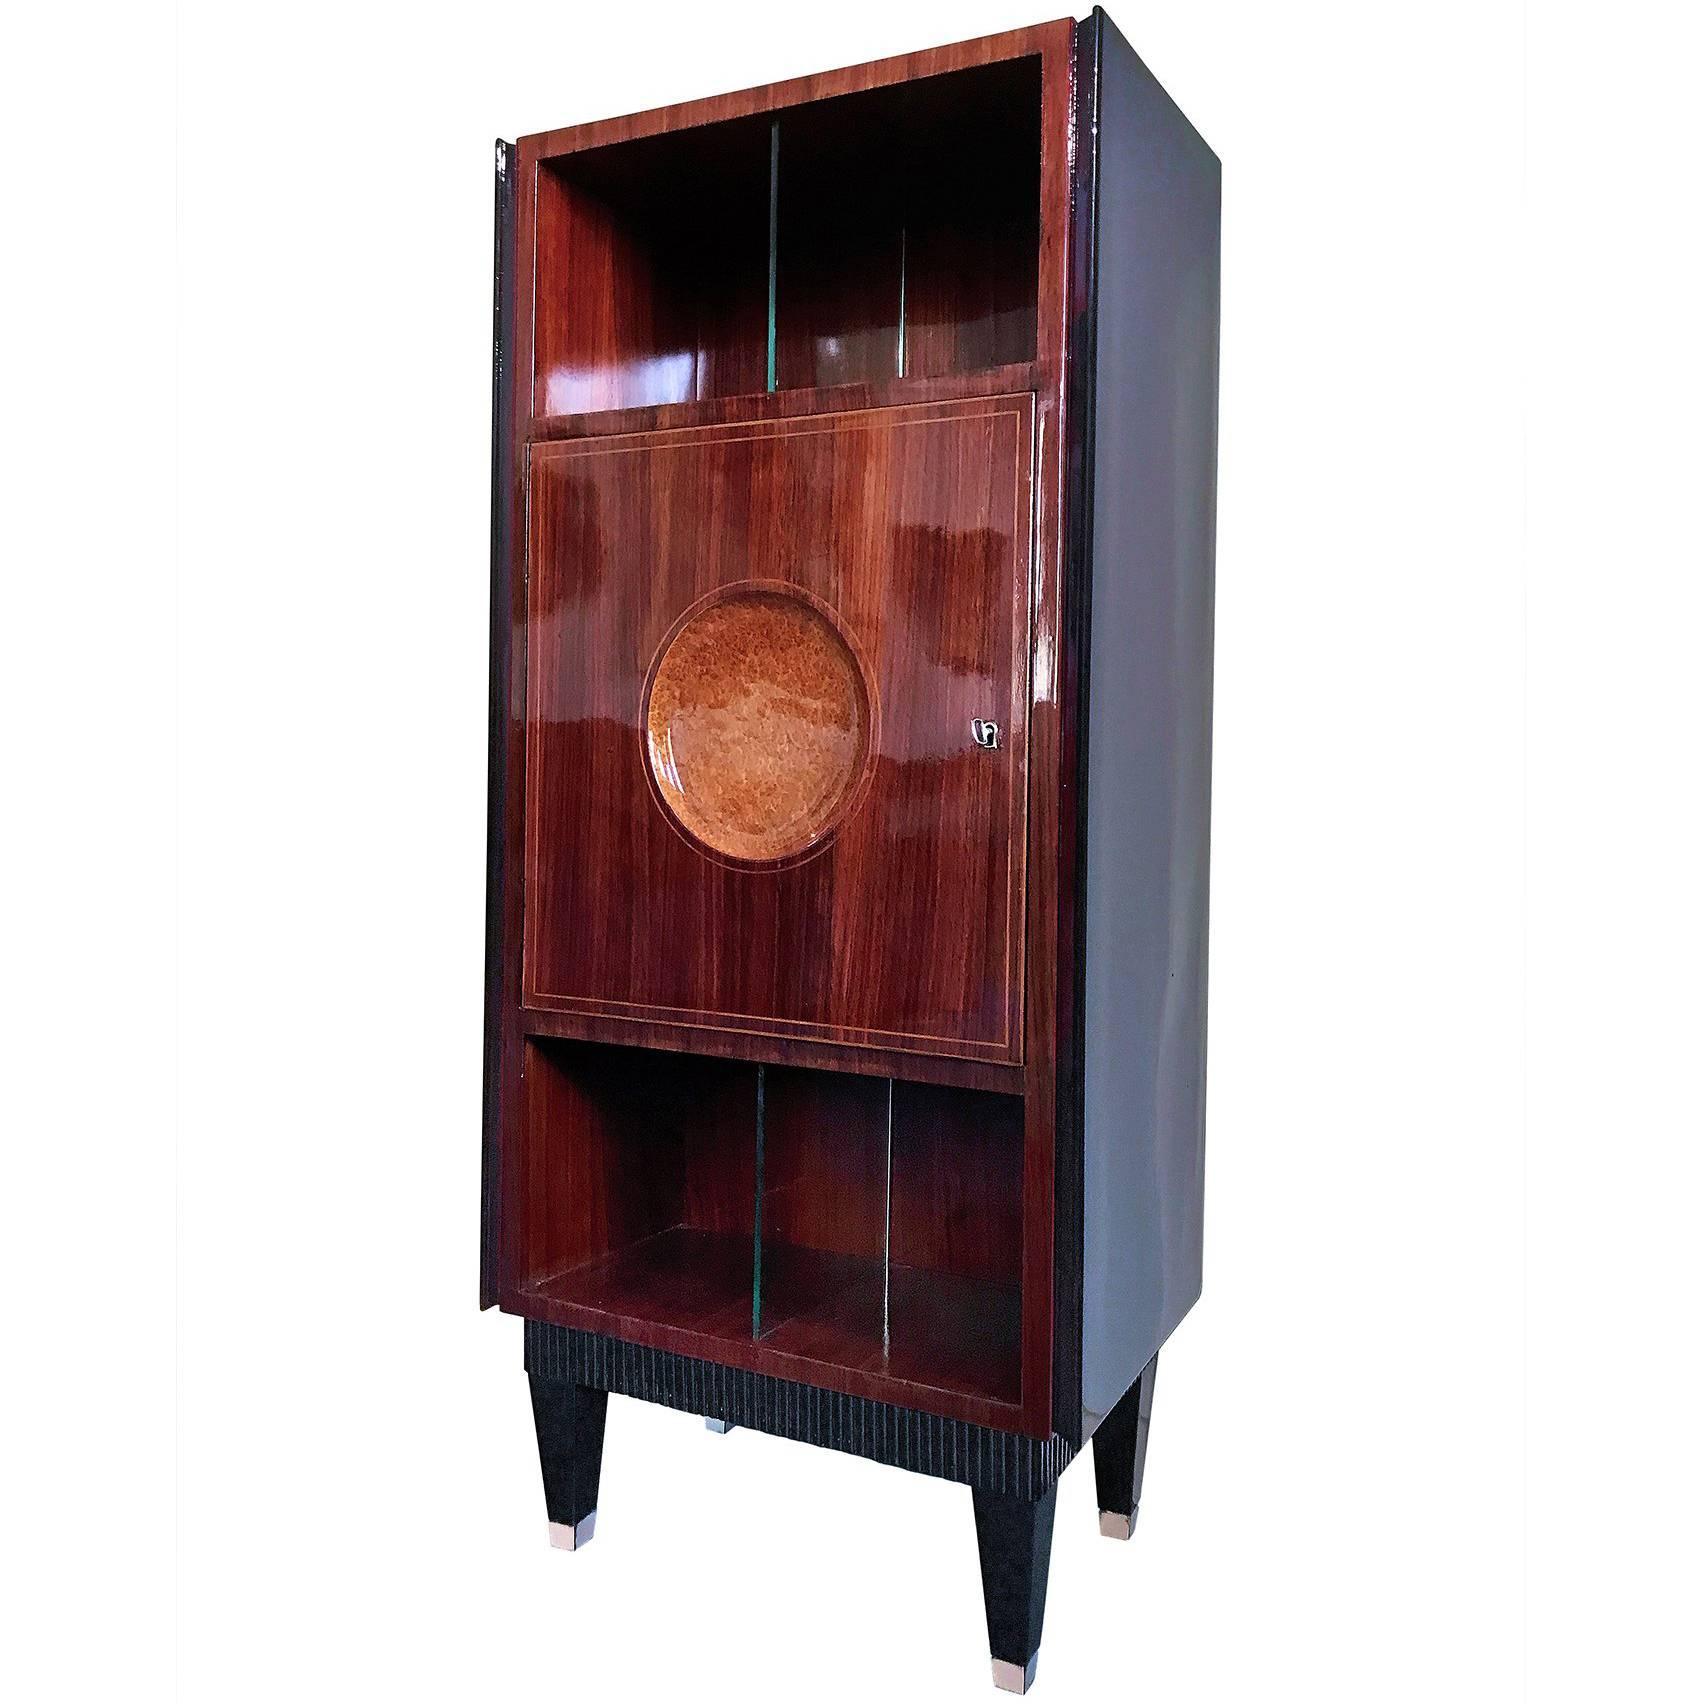 Italian Mid-Century Sideboard with Secretaire attributed to Paolo Buffa, 1950s